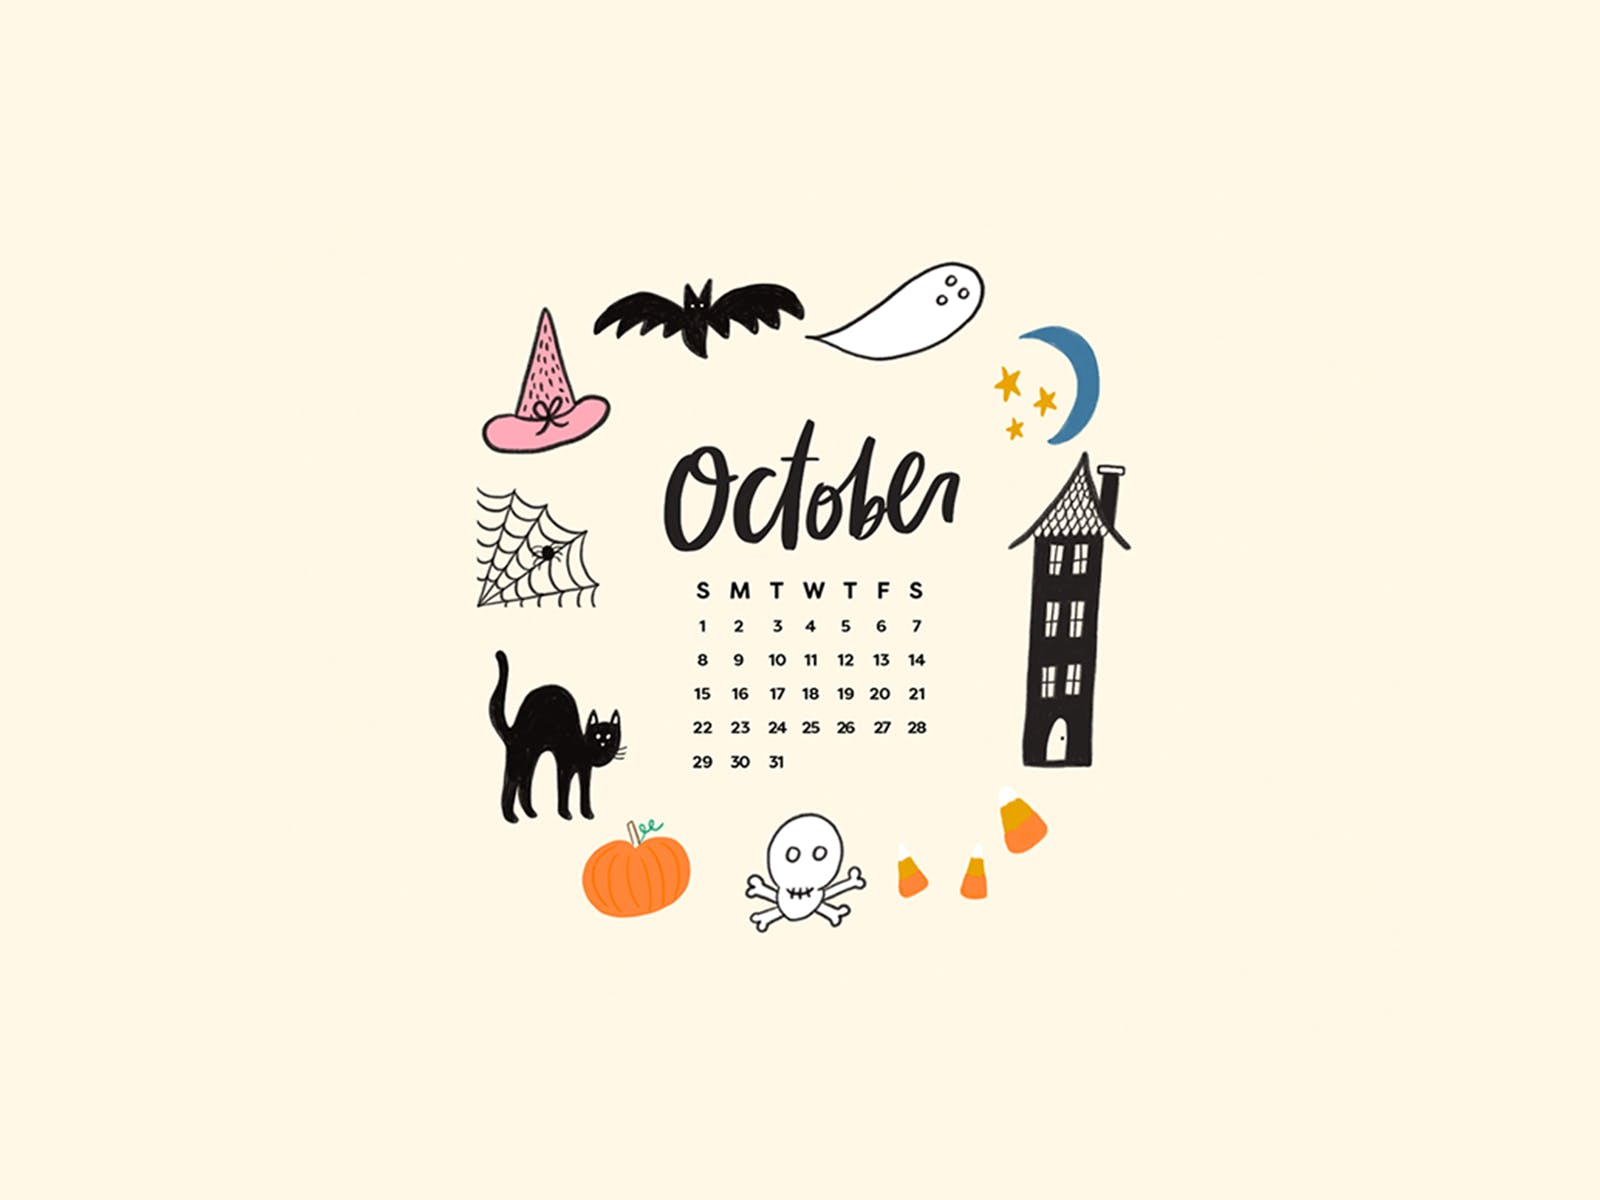 Aesthetic Halloween Wallpapers Posted By Ryan Thompson